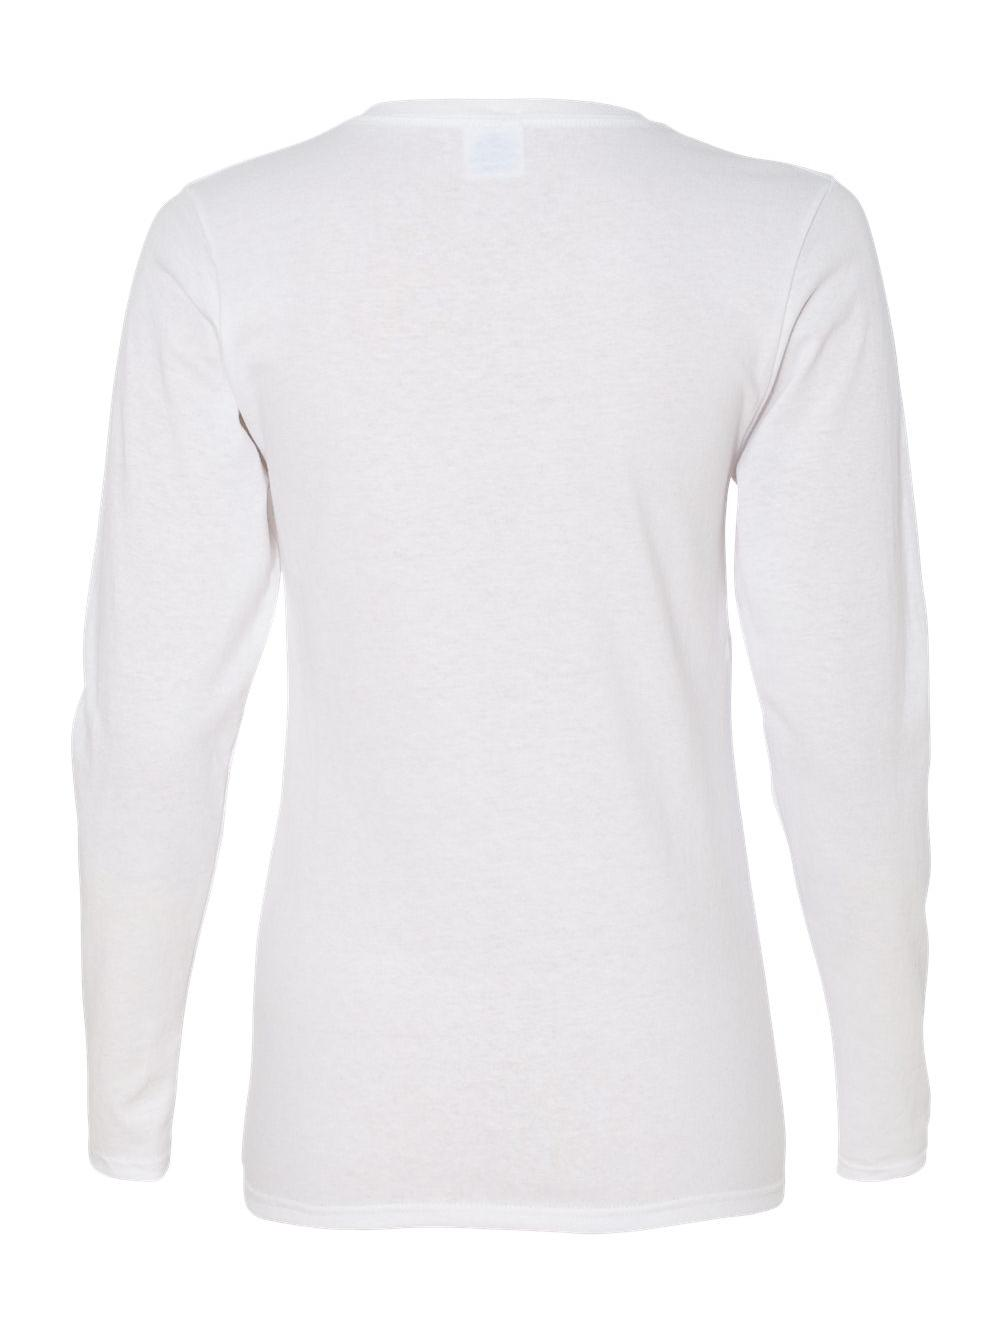 Gildan-Heavy-Cotton-Women-039-s-Long-Sleeve-T-Shirt-5400L thumbnail 4